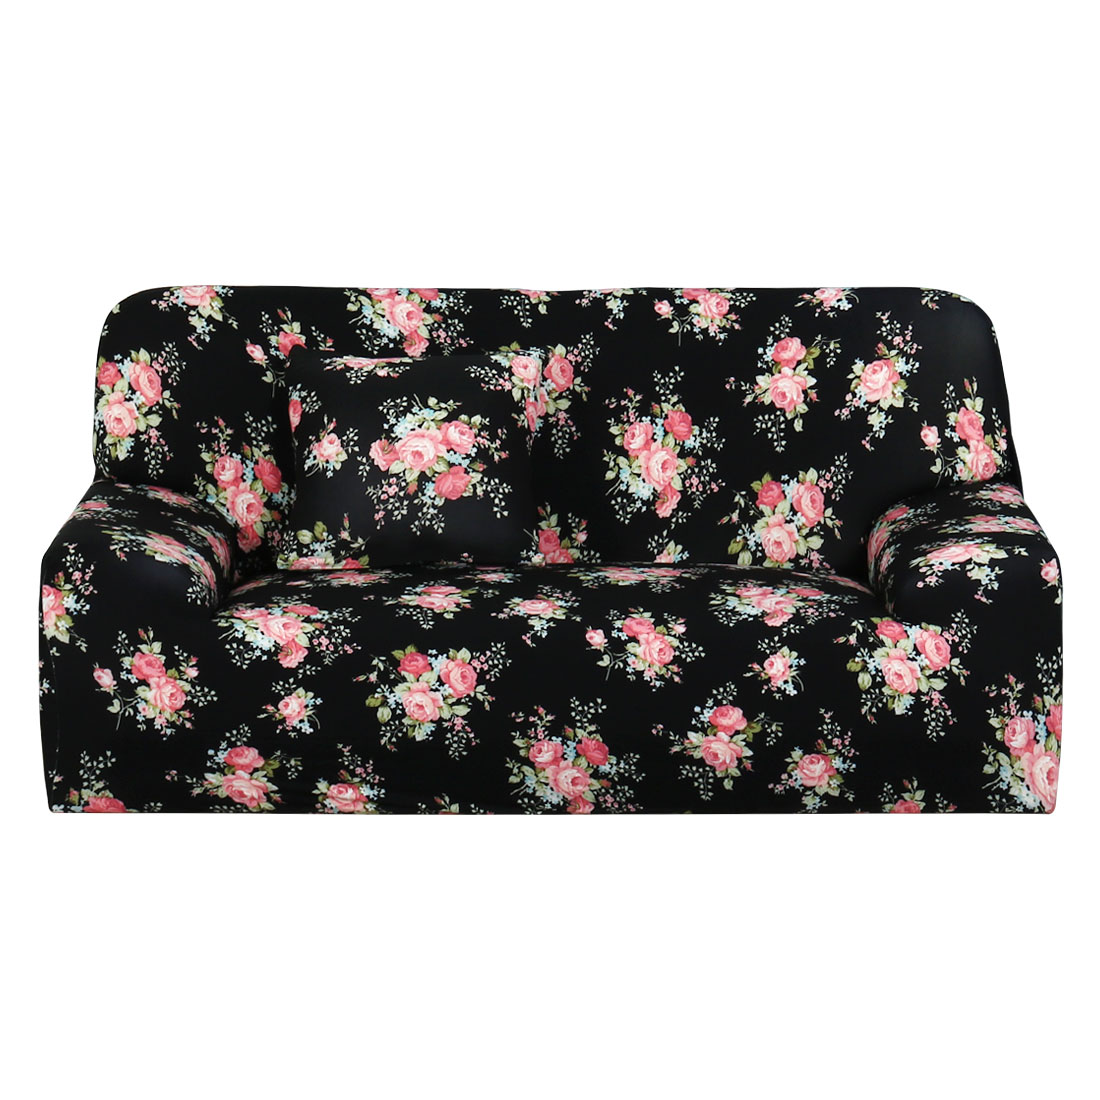 PiccoCasa Black Rose Prints 3 Seats Sofa Cover Slipcover Protector 76''-90''